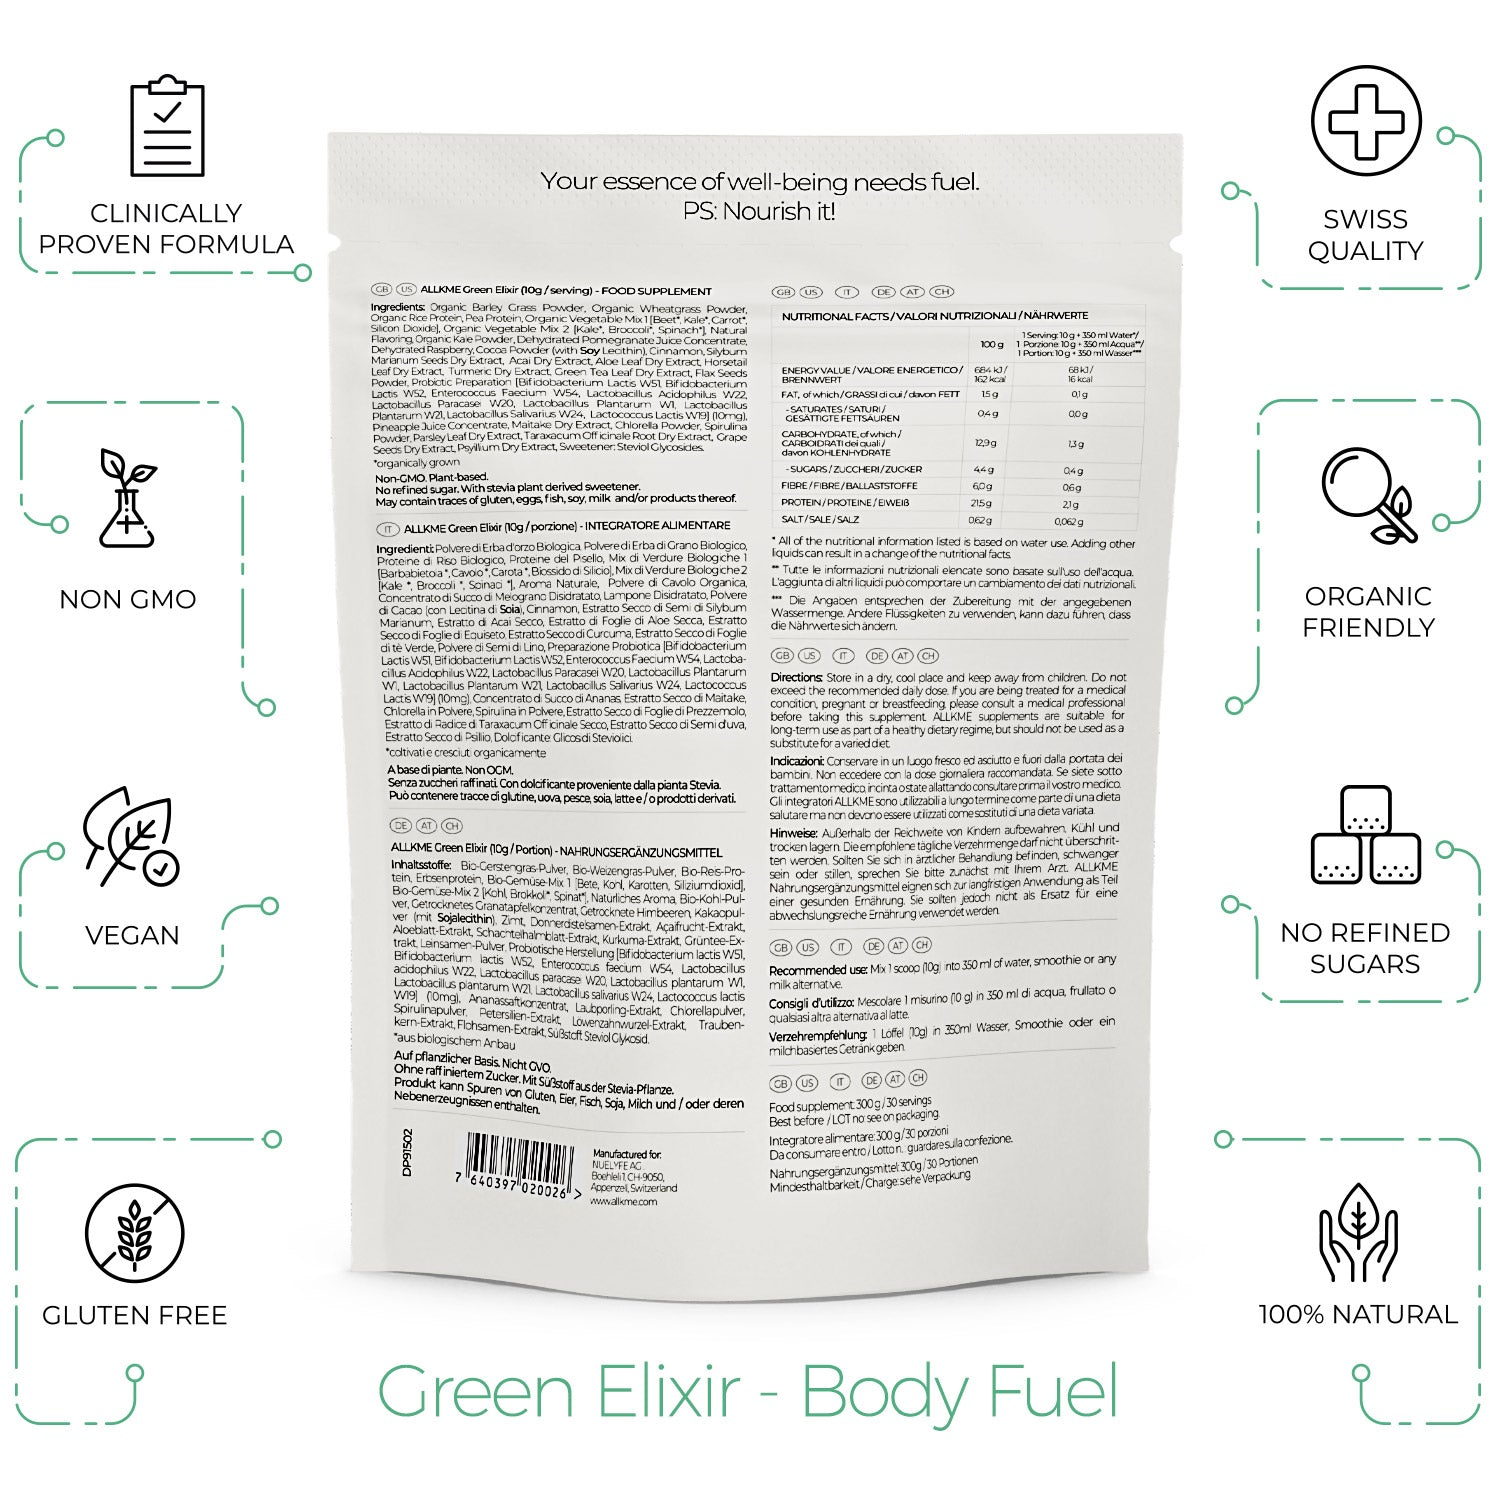 Green Elixir - Body Fuel